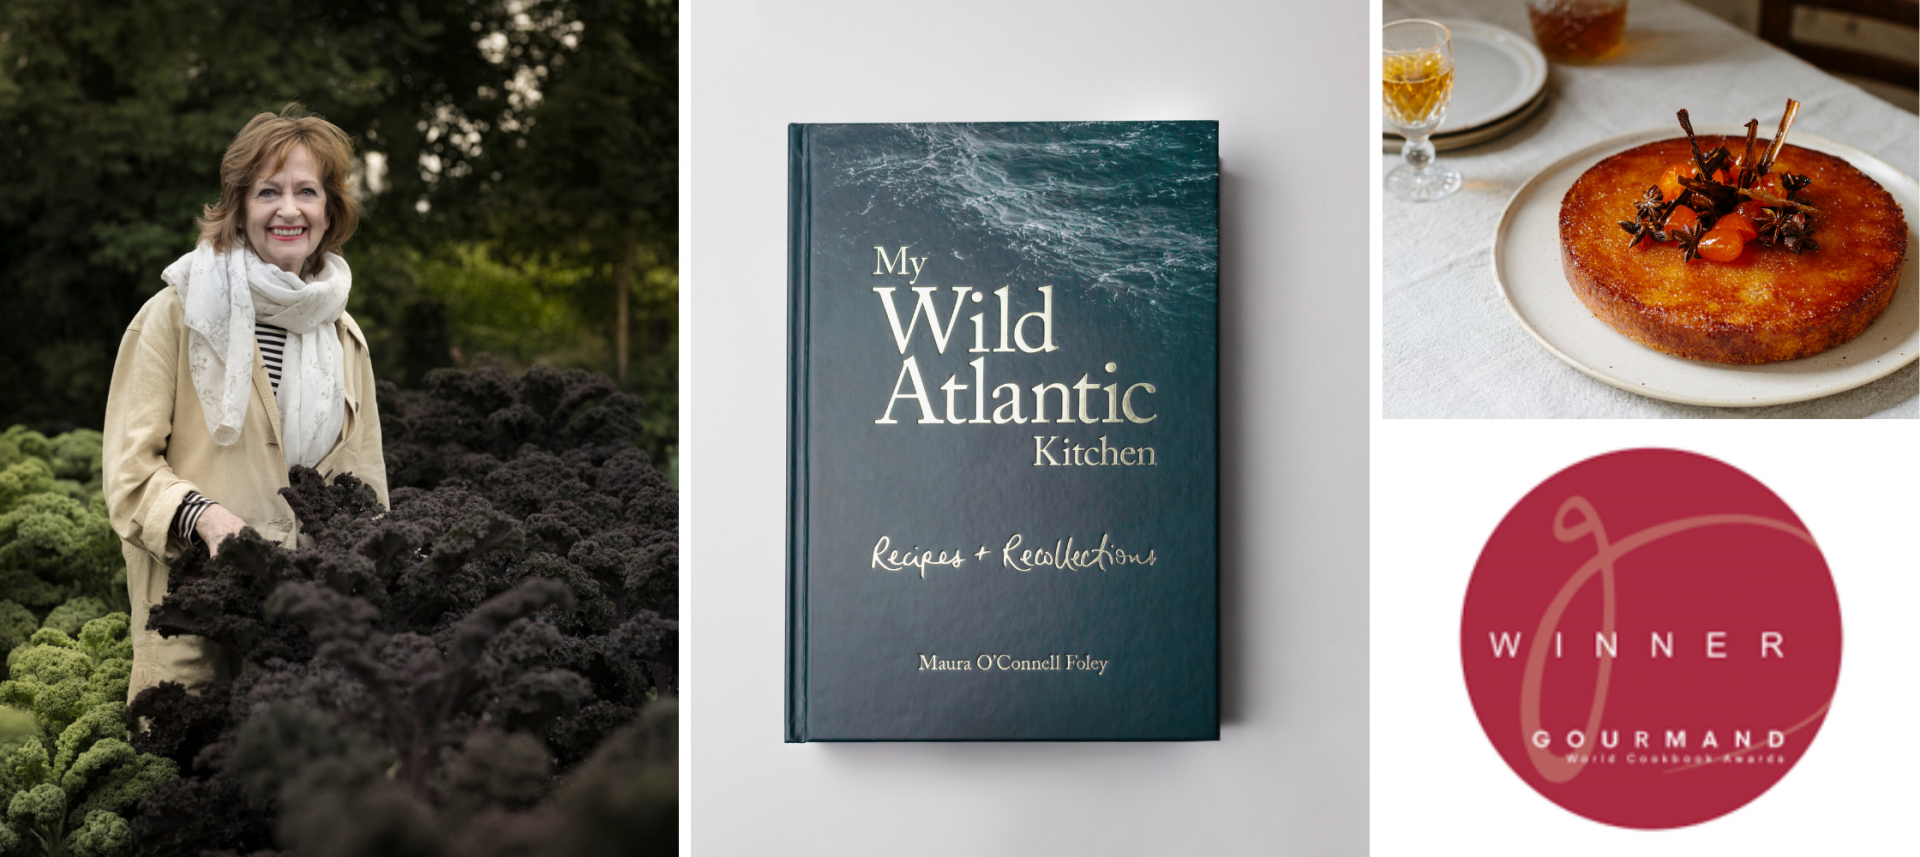 'My Wild Atlantic Kitchen' announced as Best Book in Ireland by Gourmand World Cookbook Awards 2020